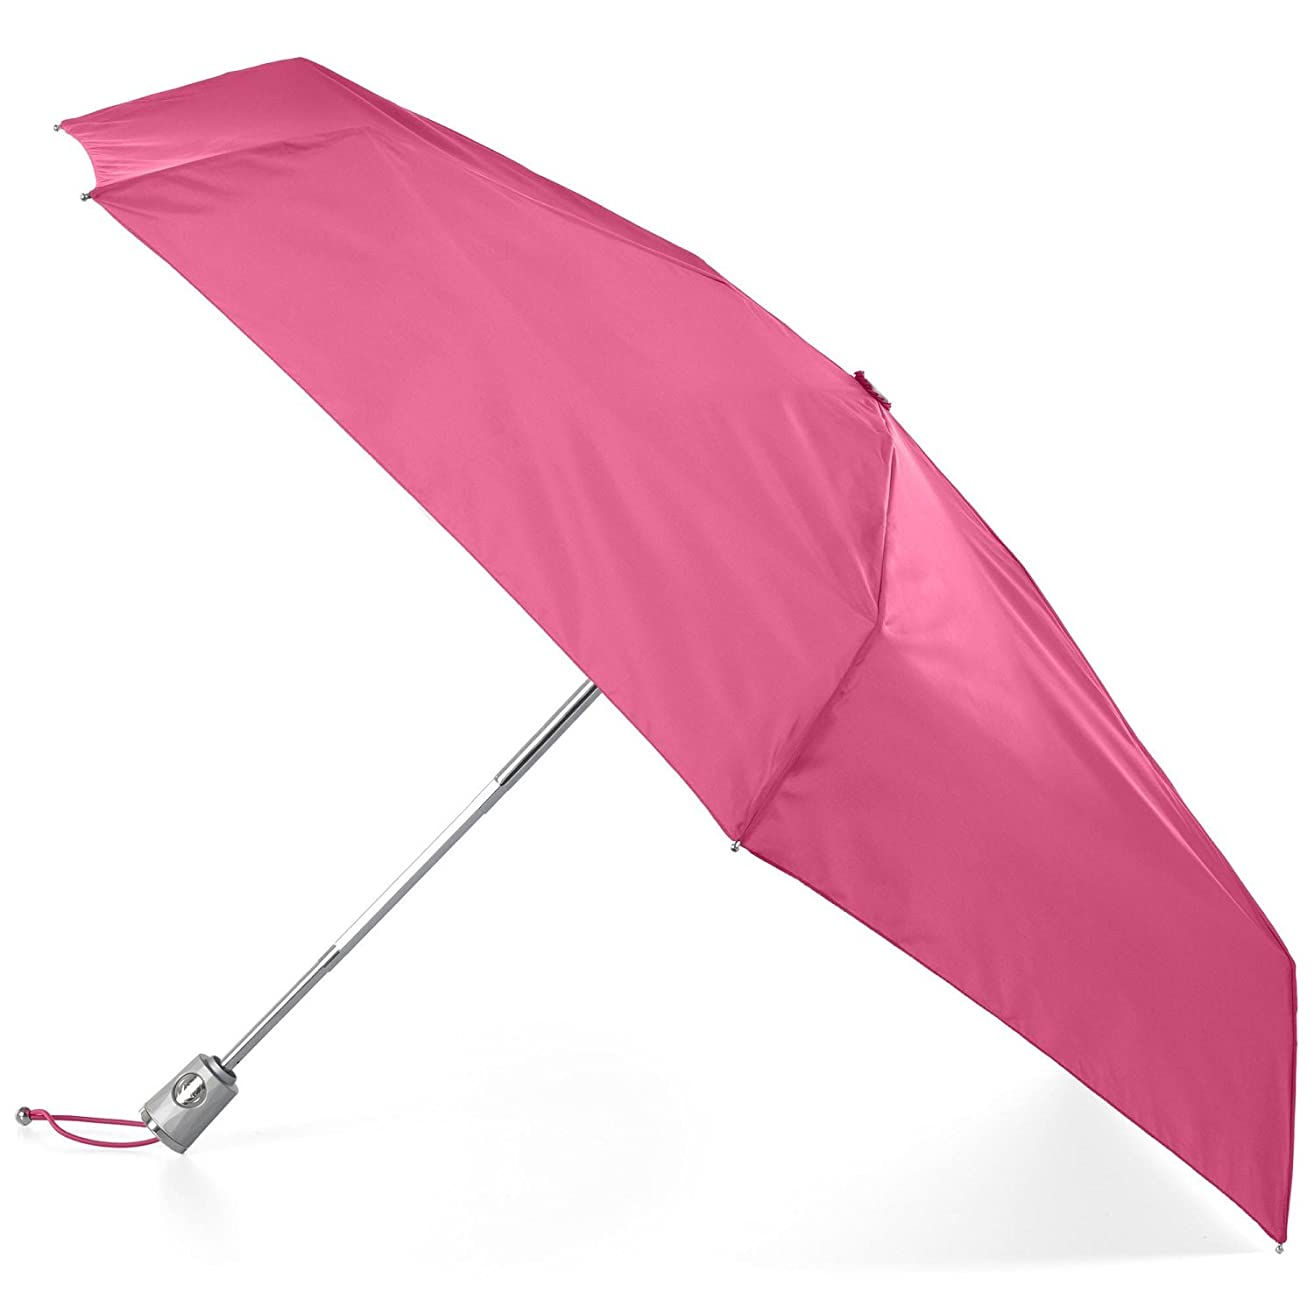 totes Auto Open Close Compact Umbrella with NeverWet and SunGuard